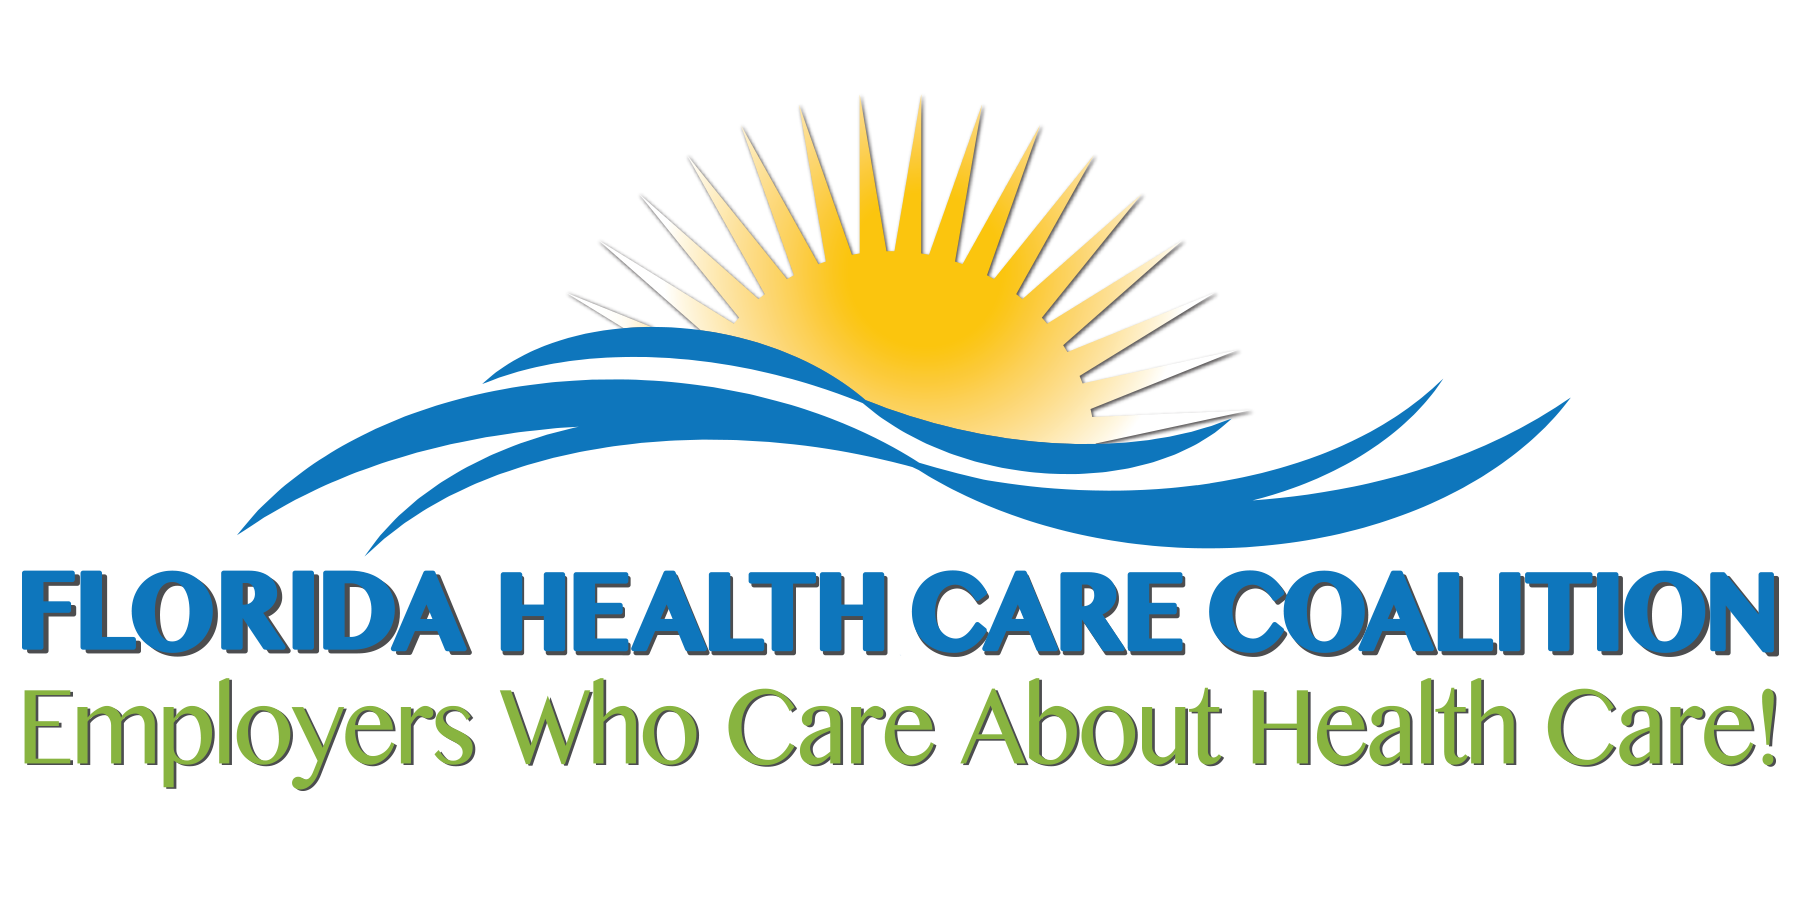 Florida Health Care Coalition (FLHCC)